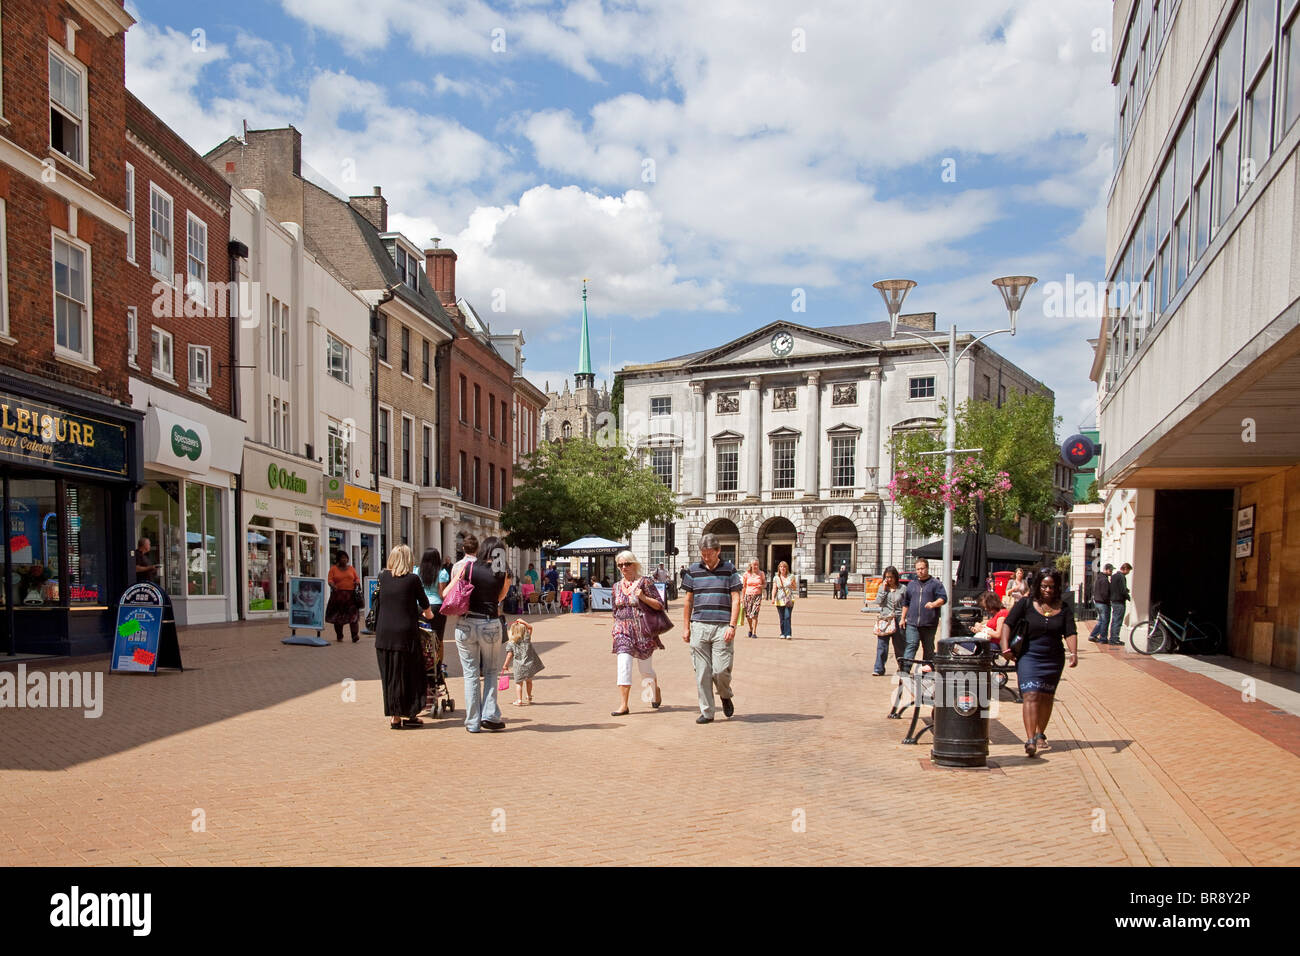 Chelmsford,Essex The High Street looking towards the Shire Hall August 2010 - Stock Image